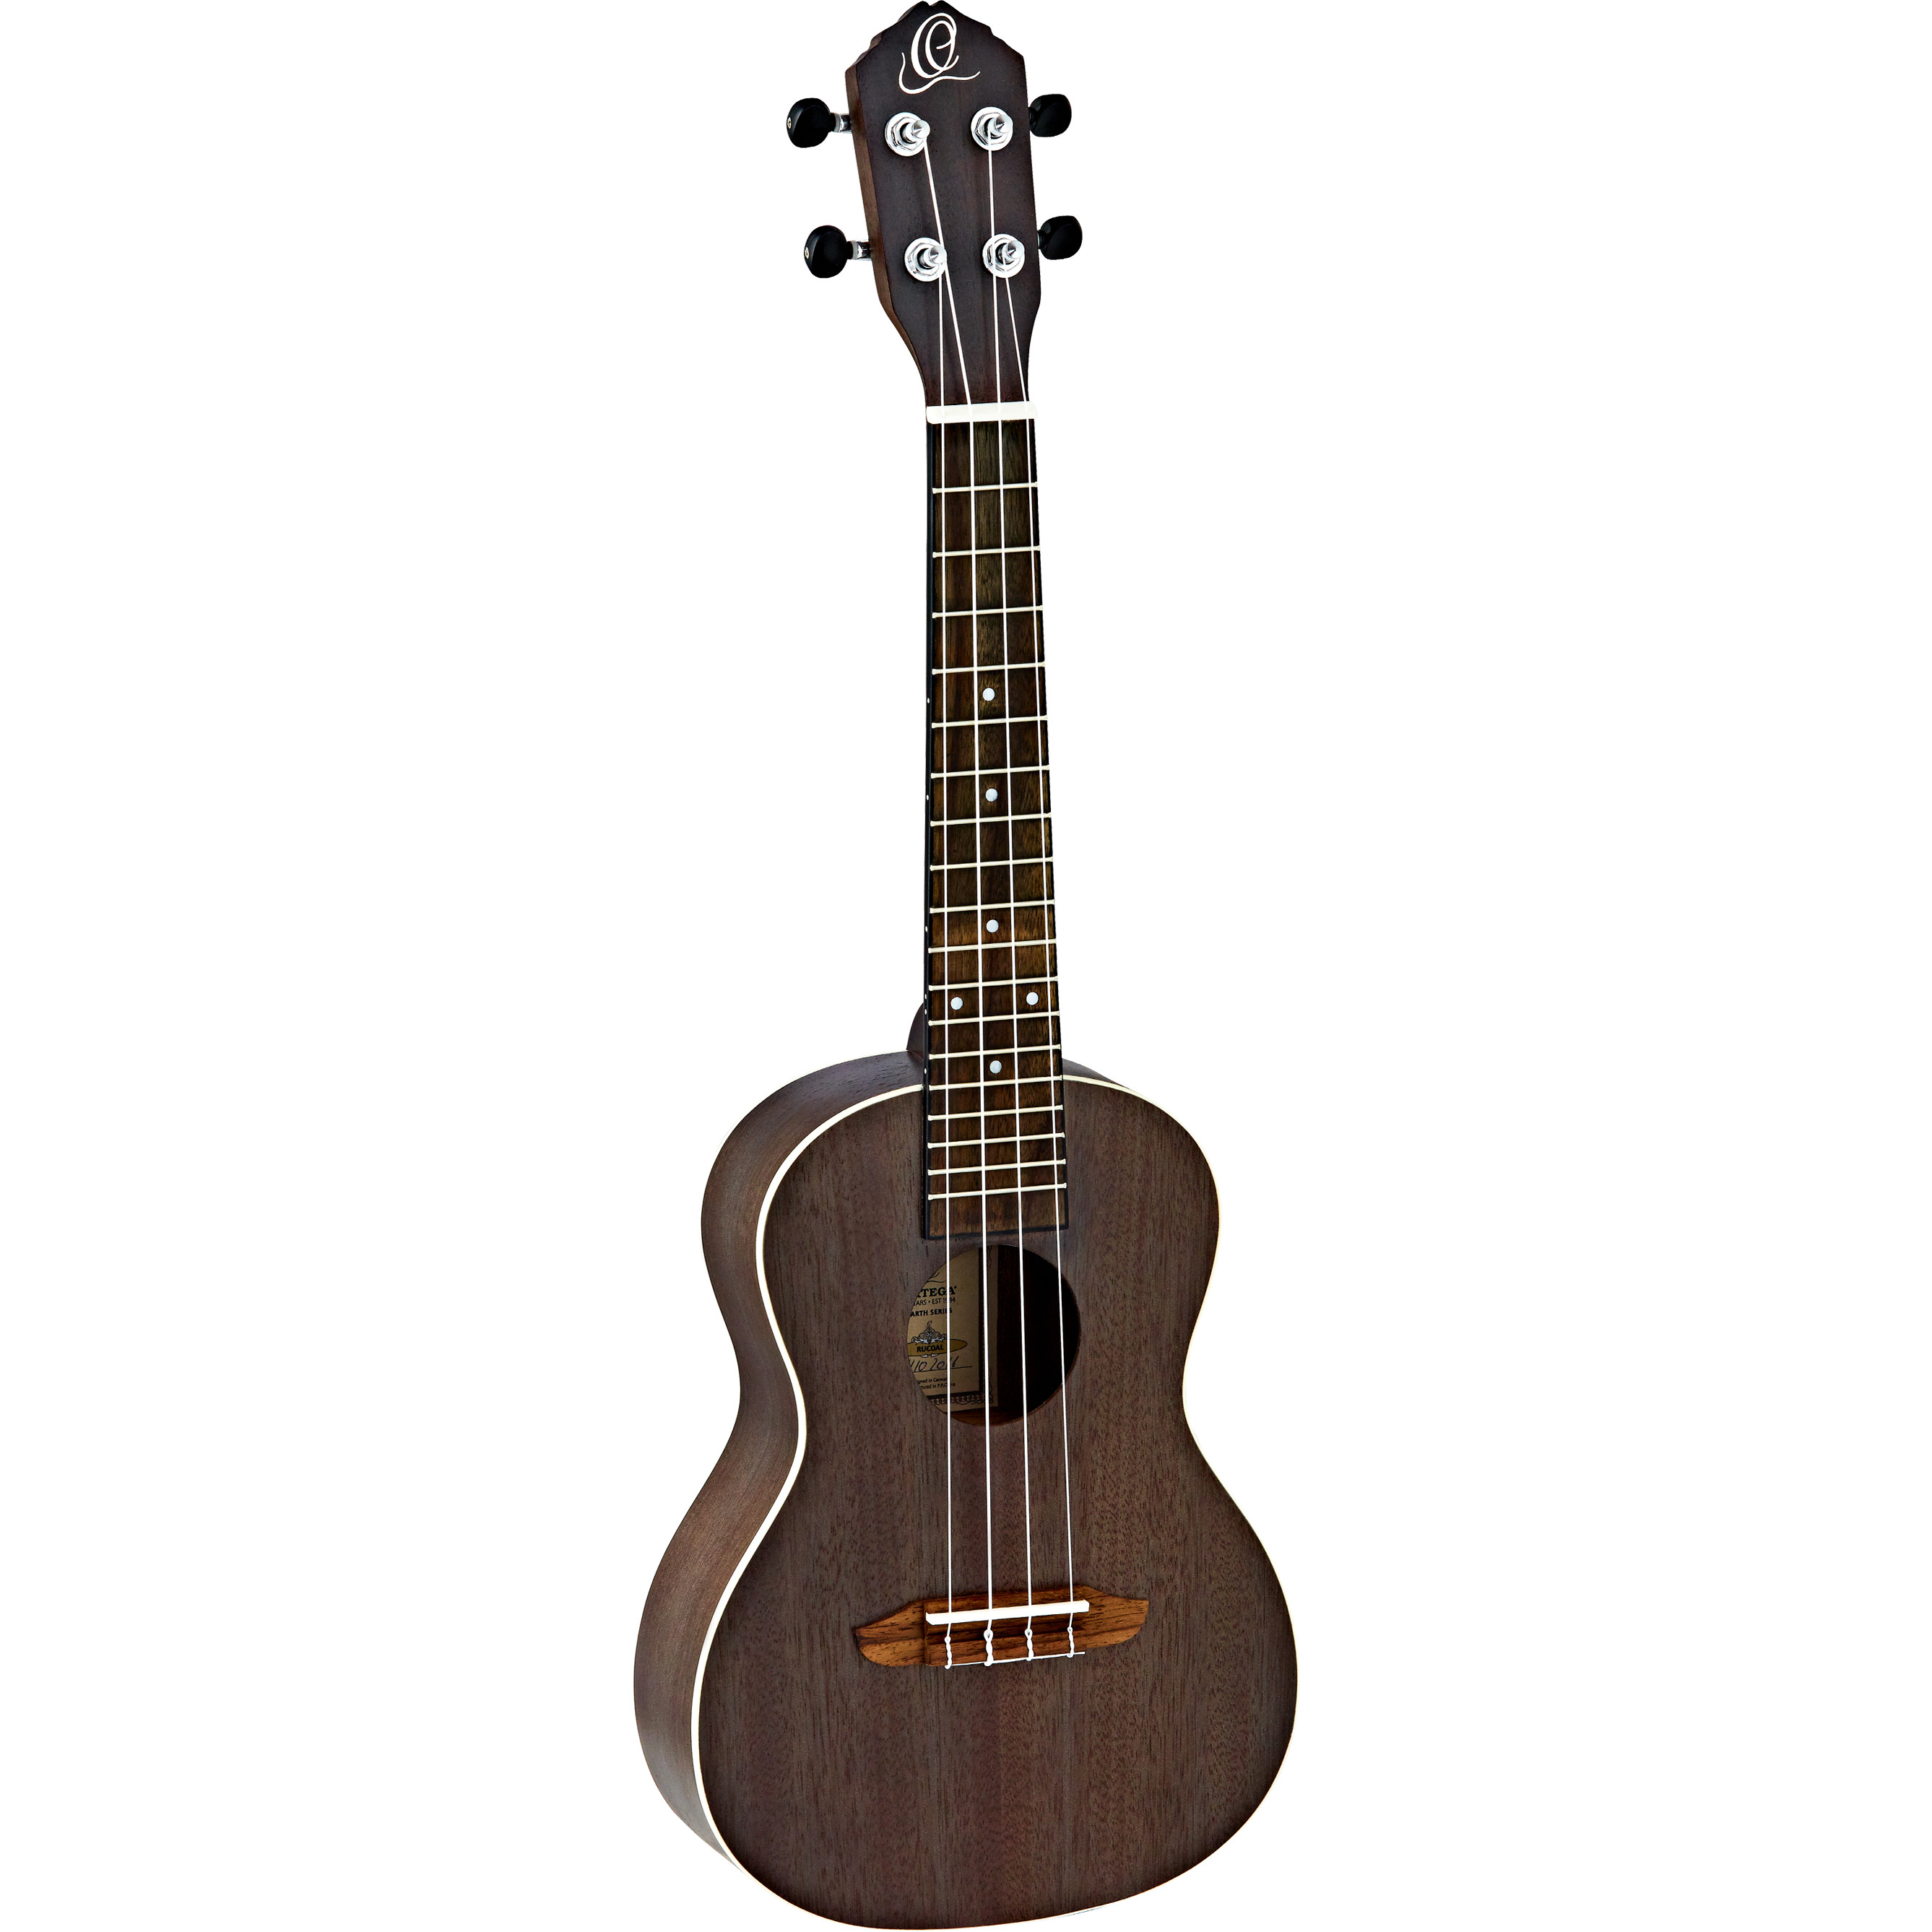 Ortega Earth Series RUCOAL concert ukulele, black